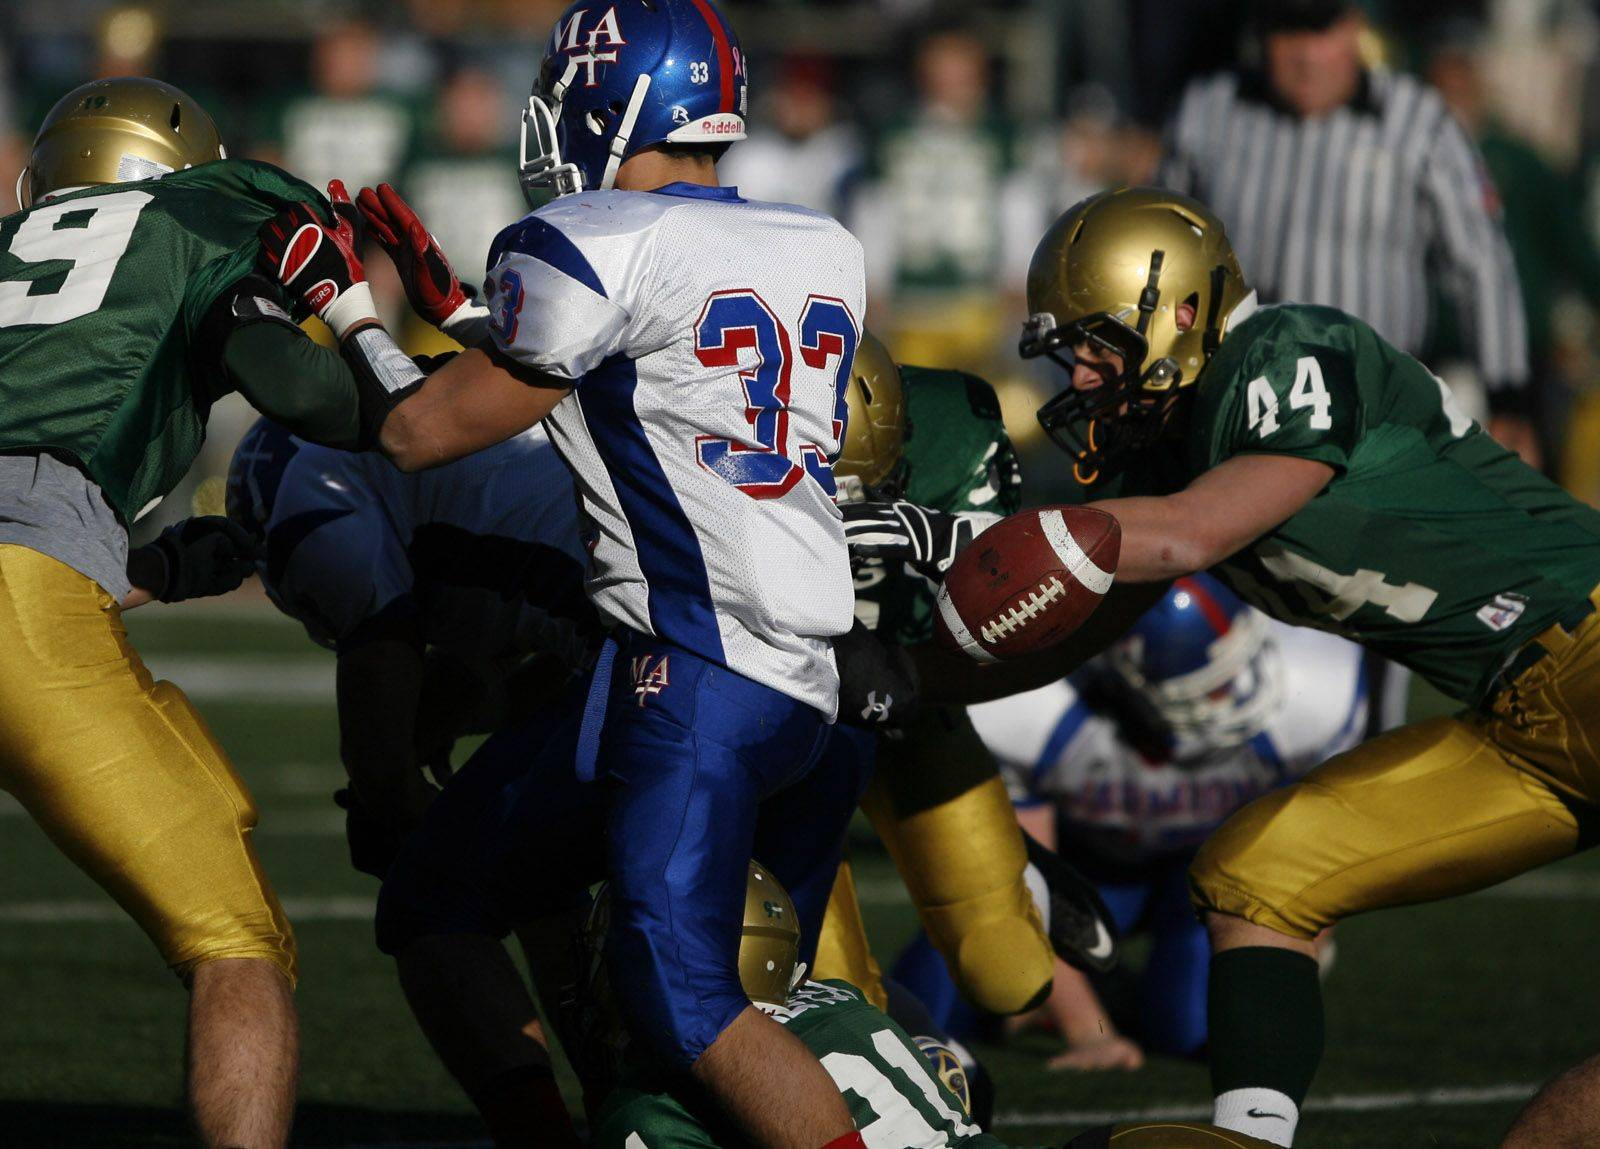 Images from the 6A state title game between Marmion Academy and Rockford Boylan Saturday, November 27, 2010.